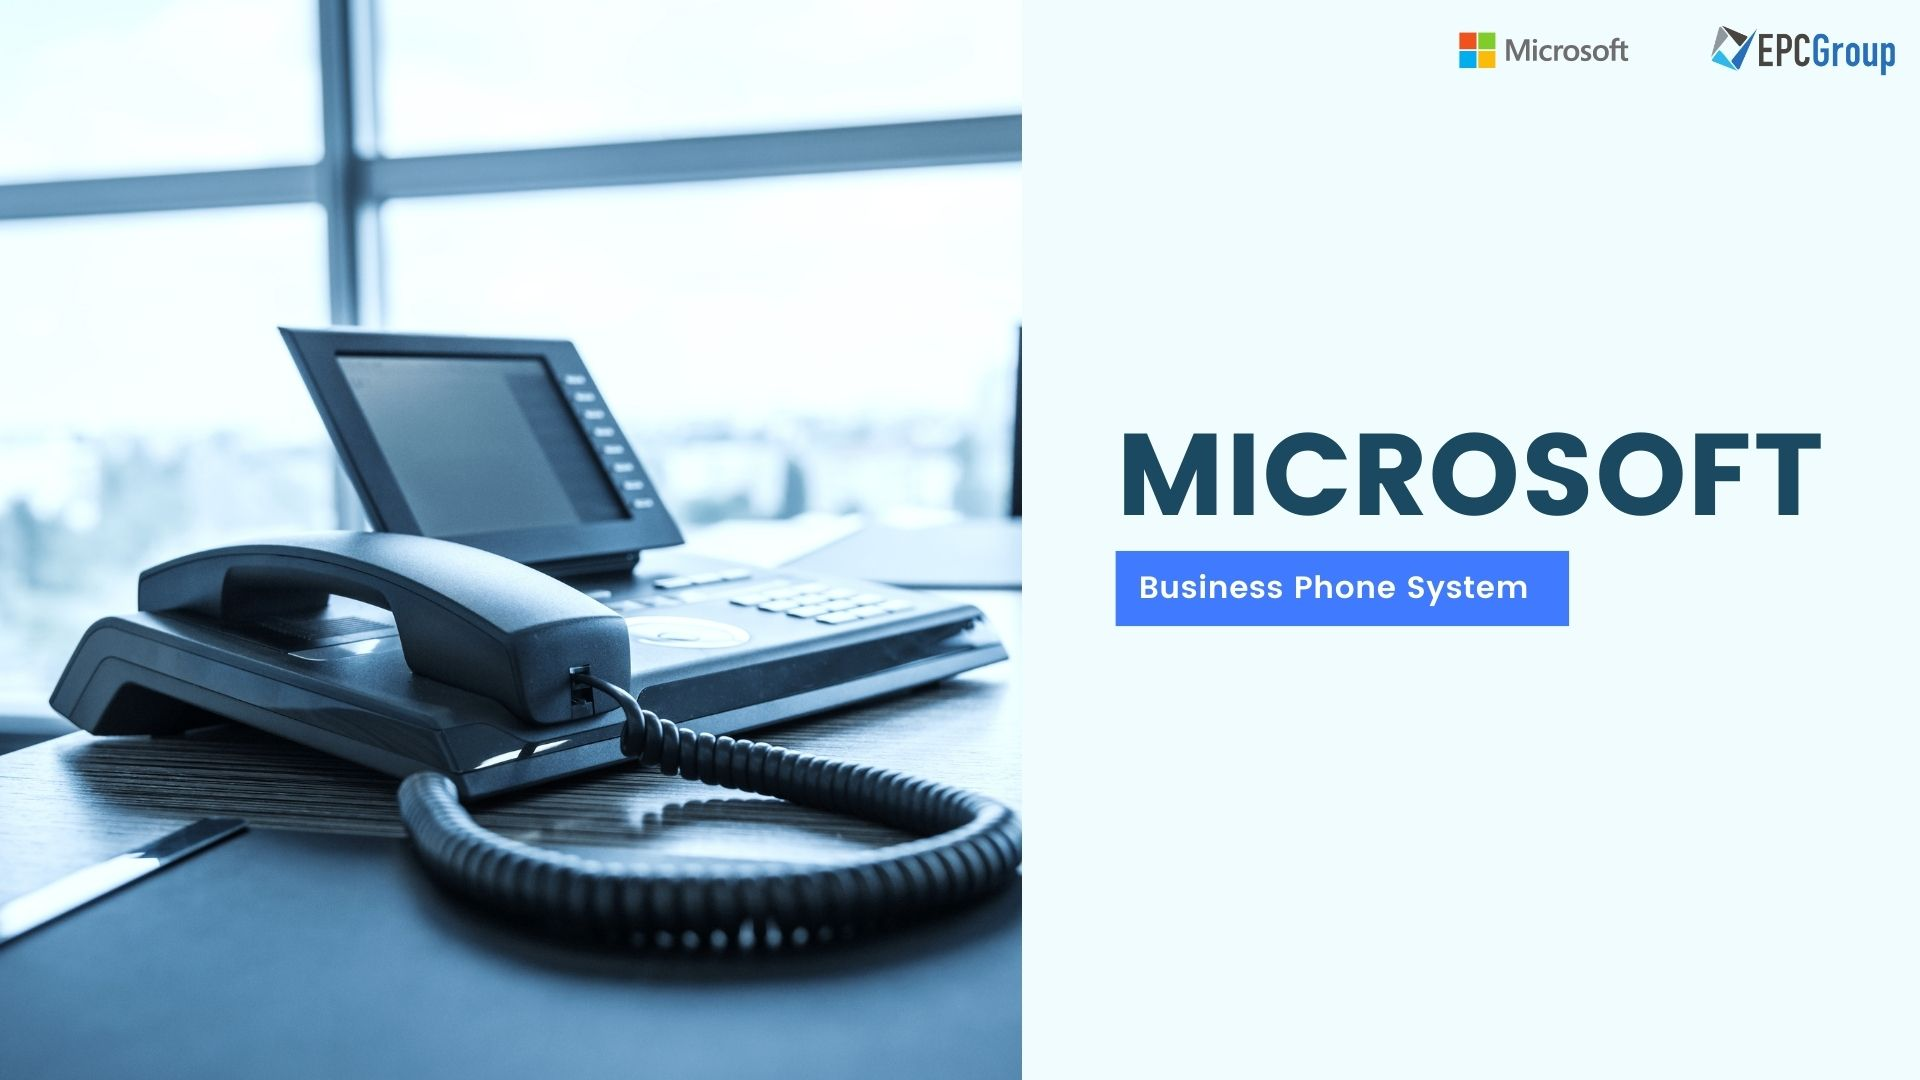 How To Buy Microsoft Business Phone System. - thumb image